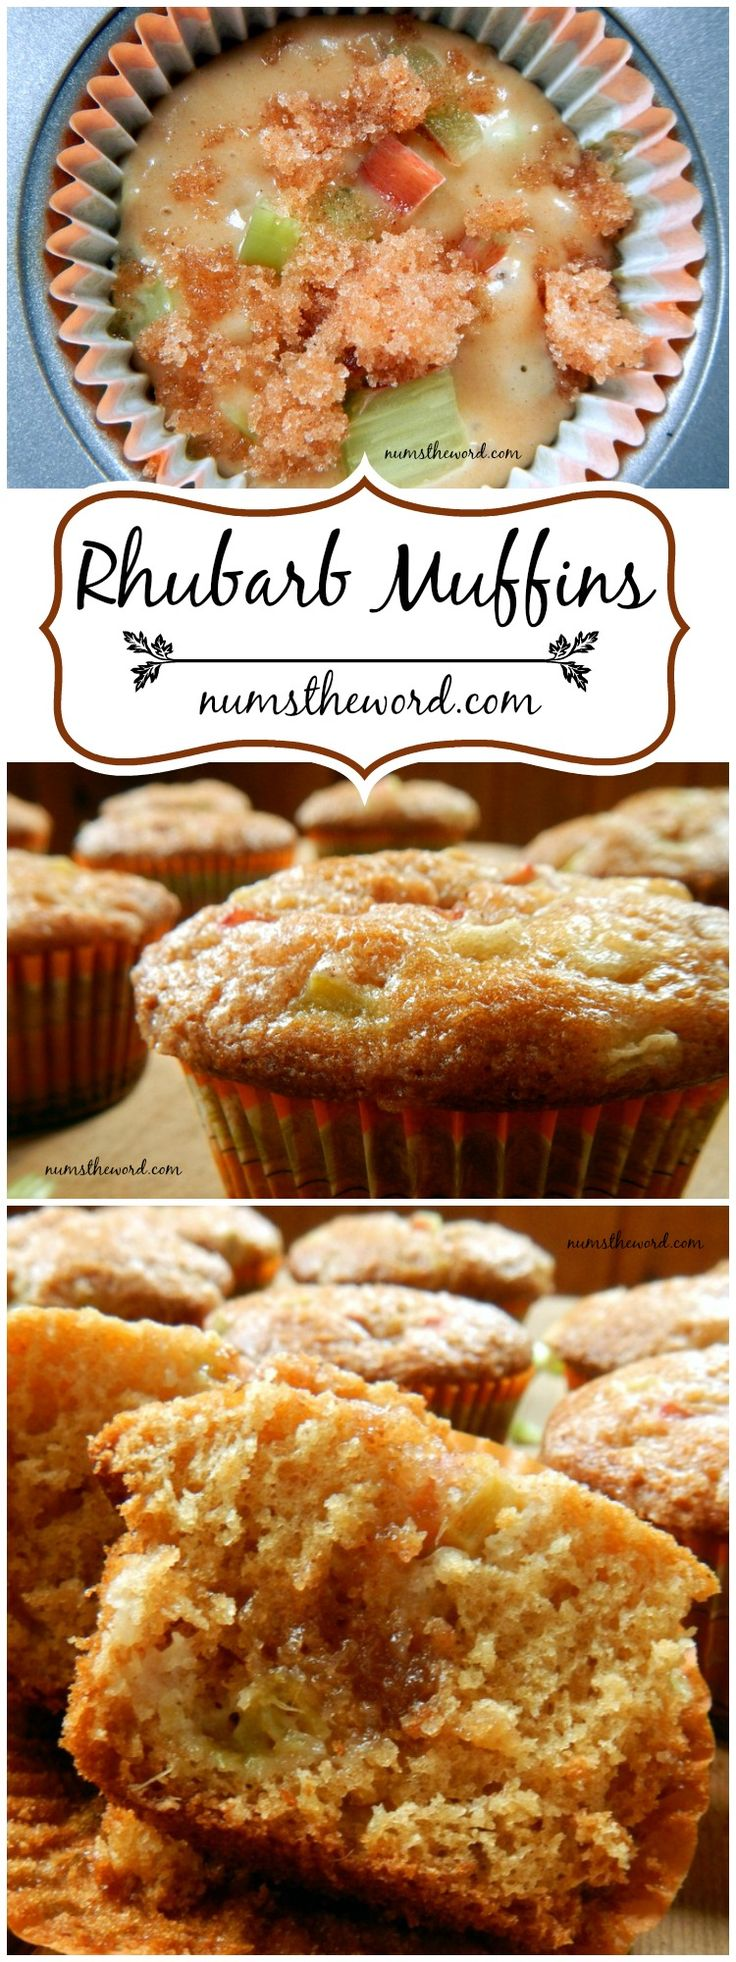 Cinnamon Rhubarb Muffins - Don't let rhubarb scare you. Try these tasty and nonthreatening muffins. They taste like cinnamon sugar and have ZERO crunch to them! Perfect and tasty!